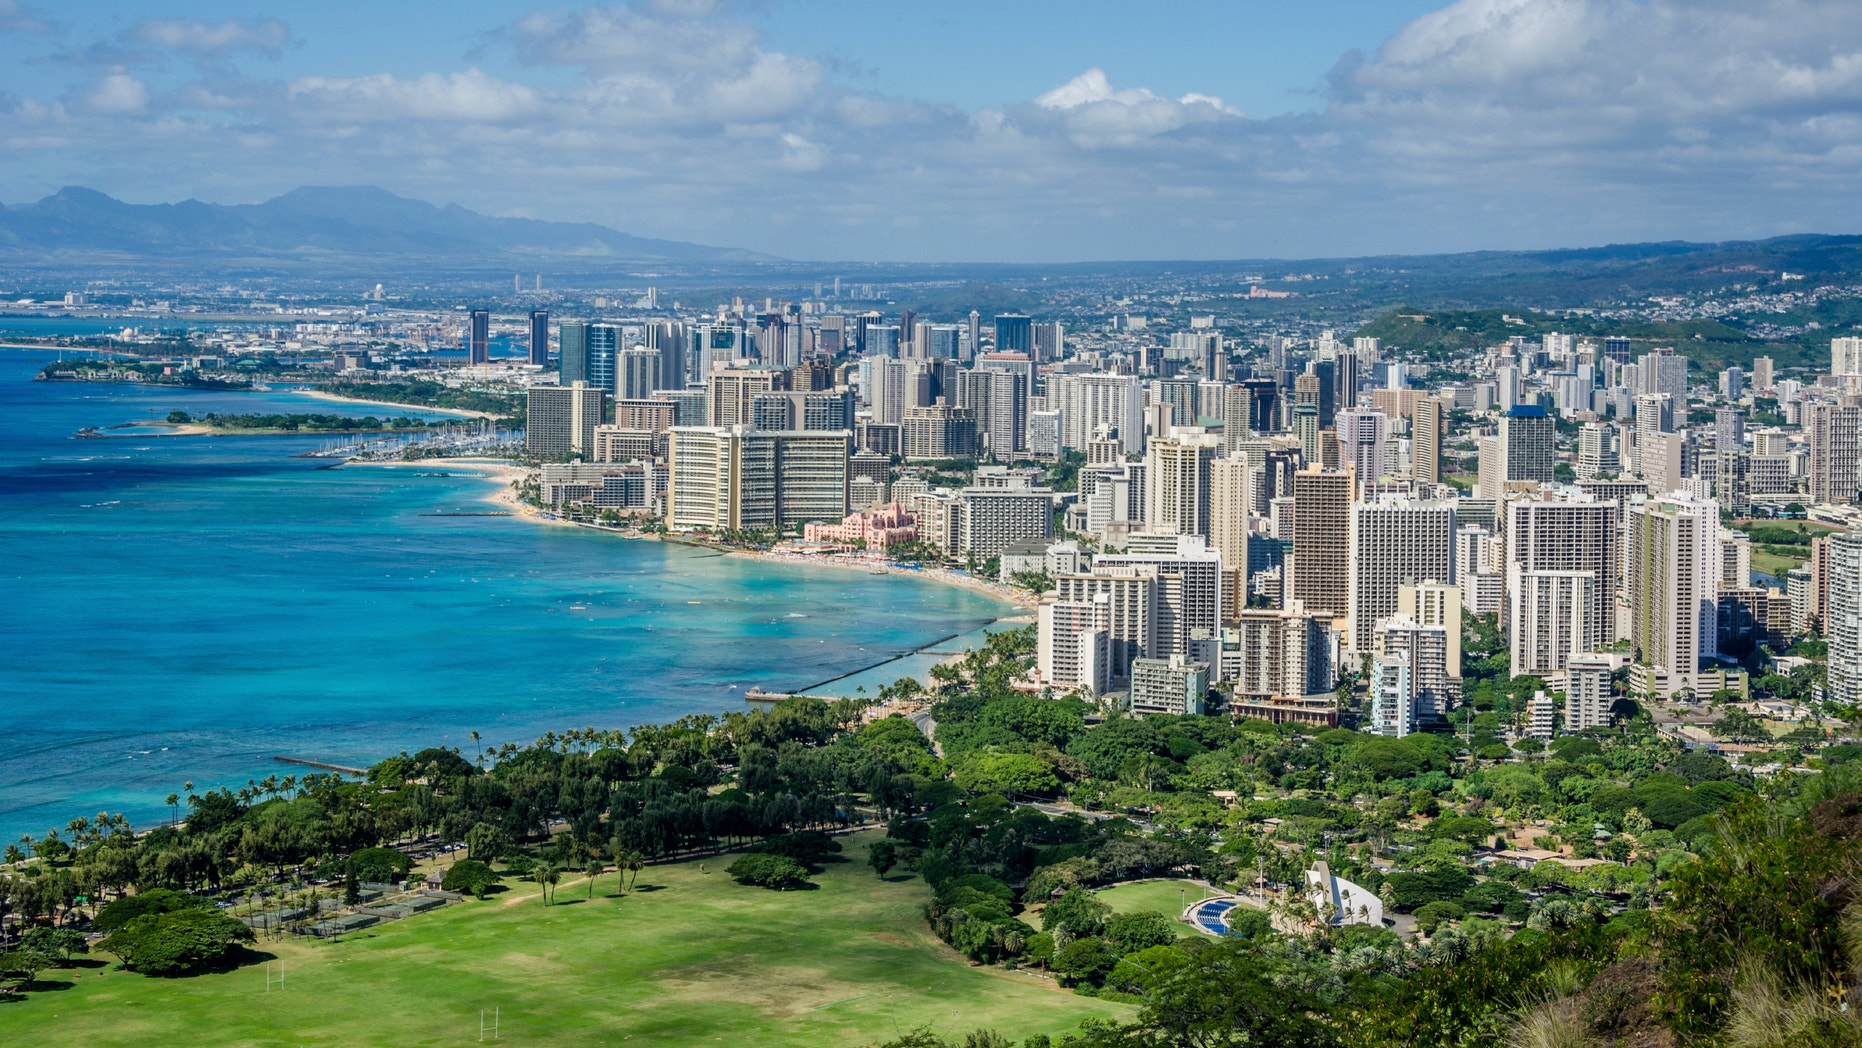 The Waikiki neighborhood in Honolulu, Hawaii